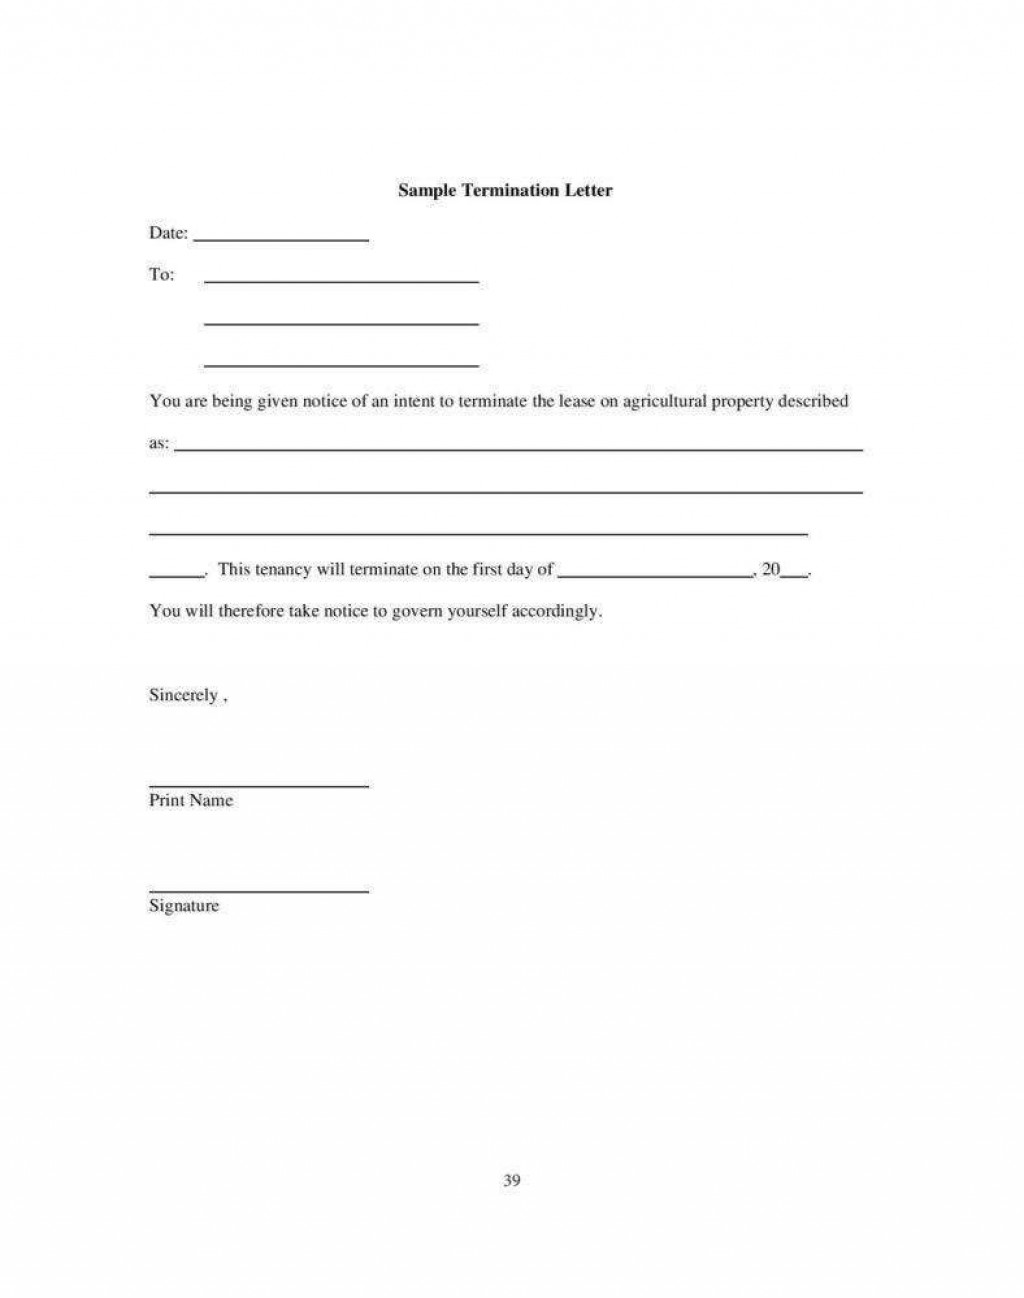 000 Unusual Template Letter To Terminate Rental Agreement Highest Quality  End Tenancy For Landlord EndingLarge